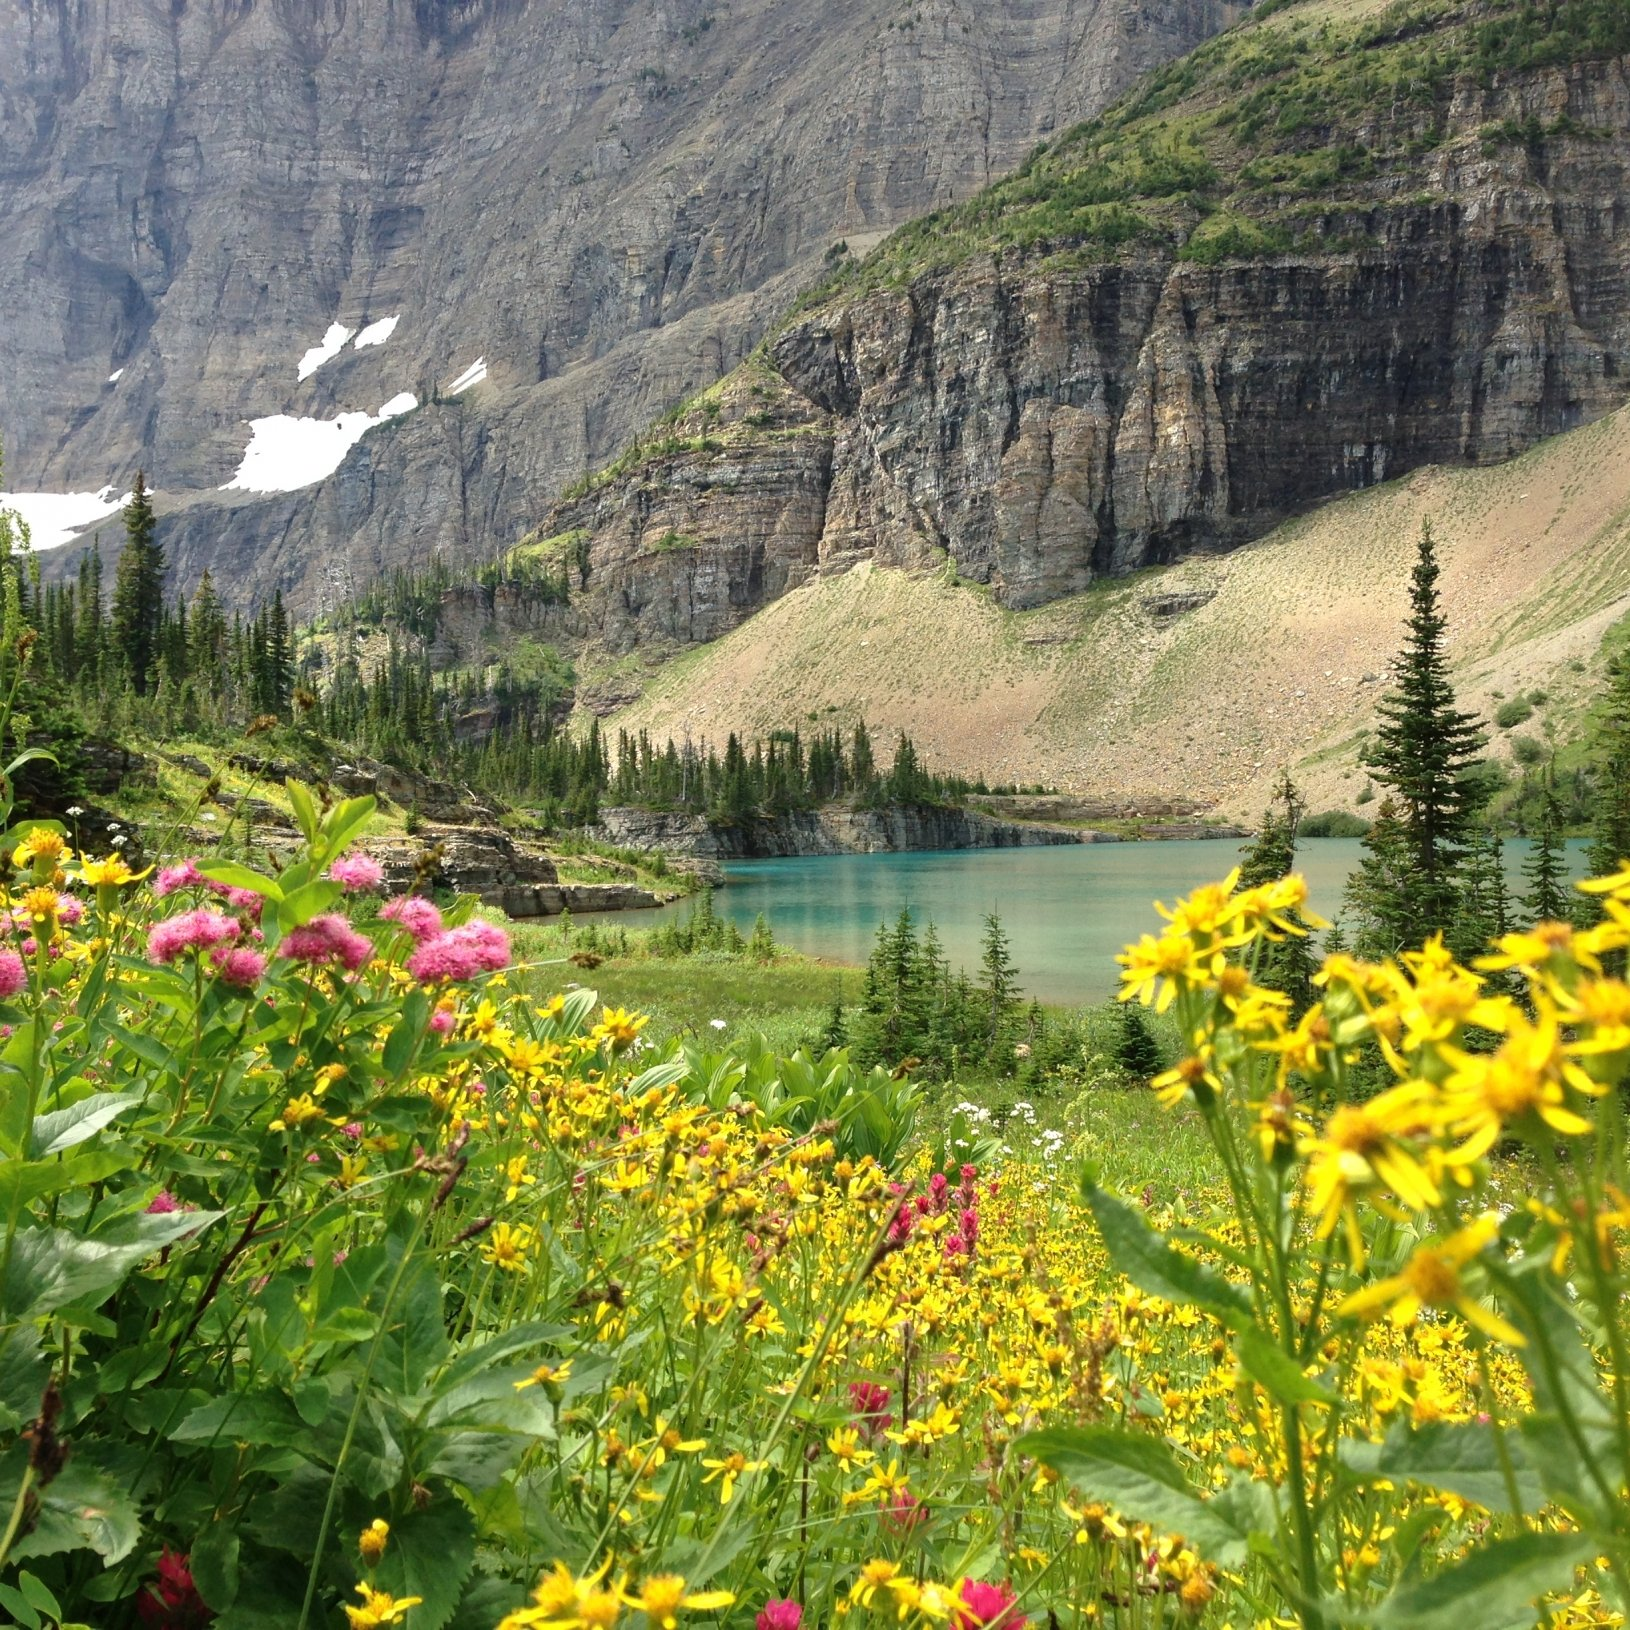 Stream originating from Iceberg Lake with summer wildflower blooms at Glacier NP.